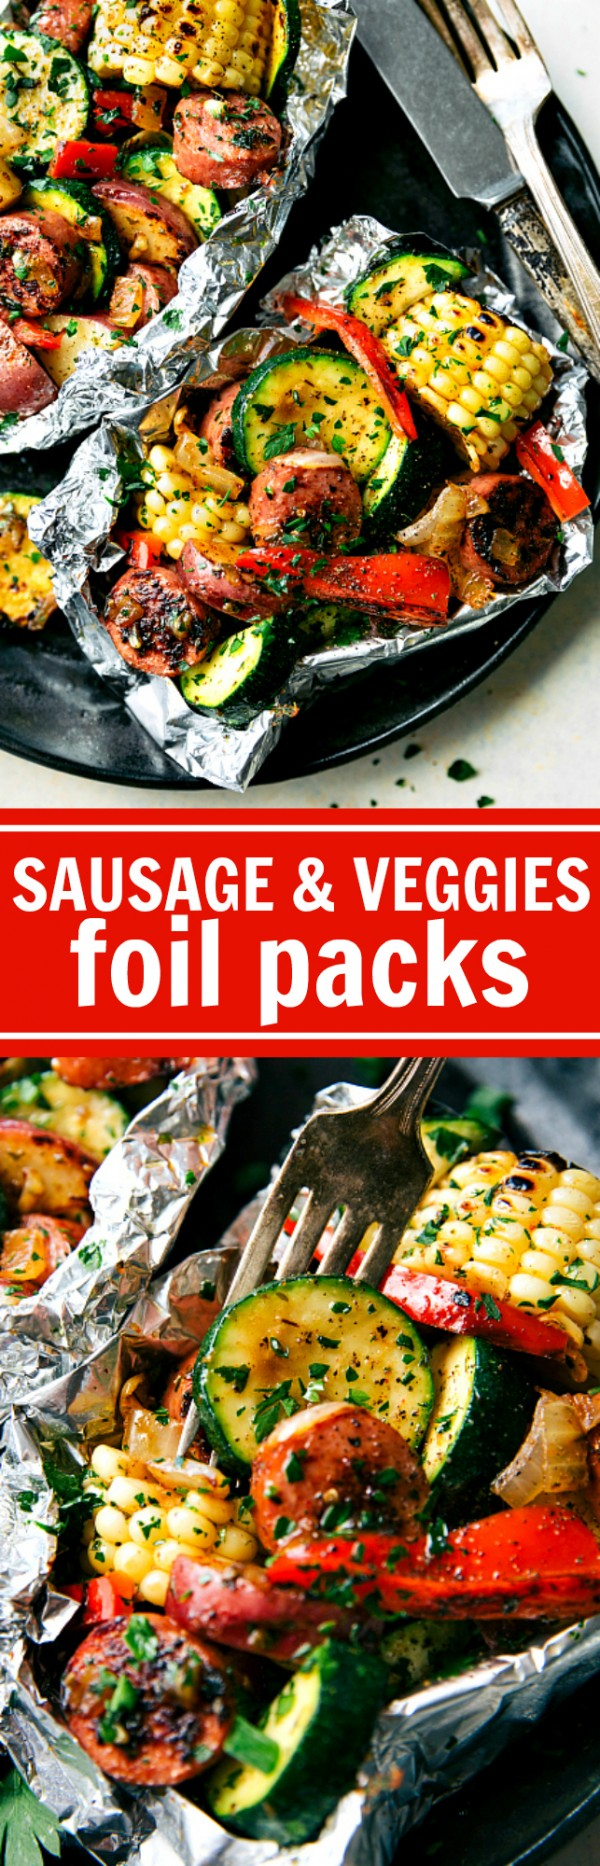 Get the recipe Sausage and Veggies Foil Packs @recipes_to_go